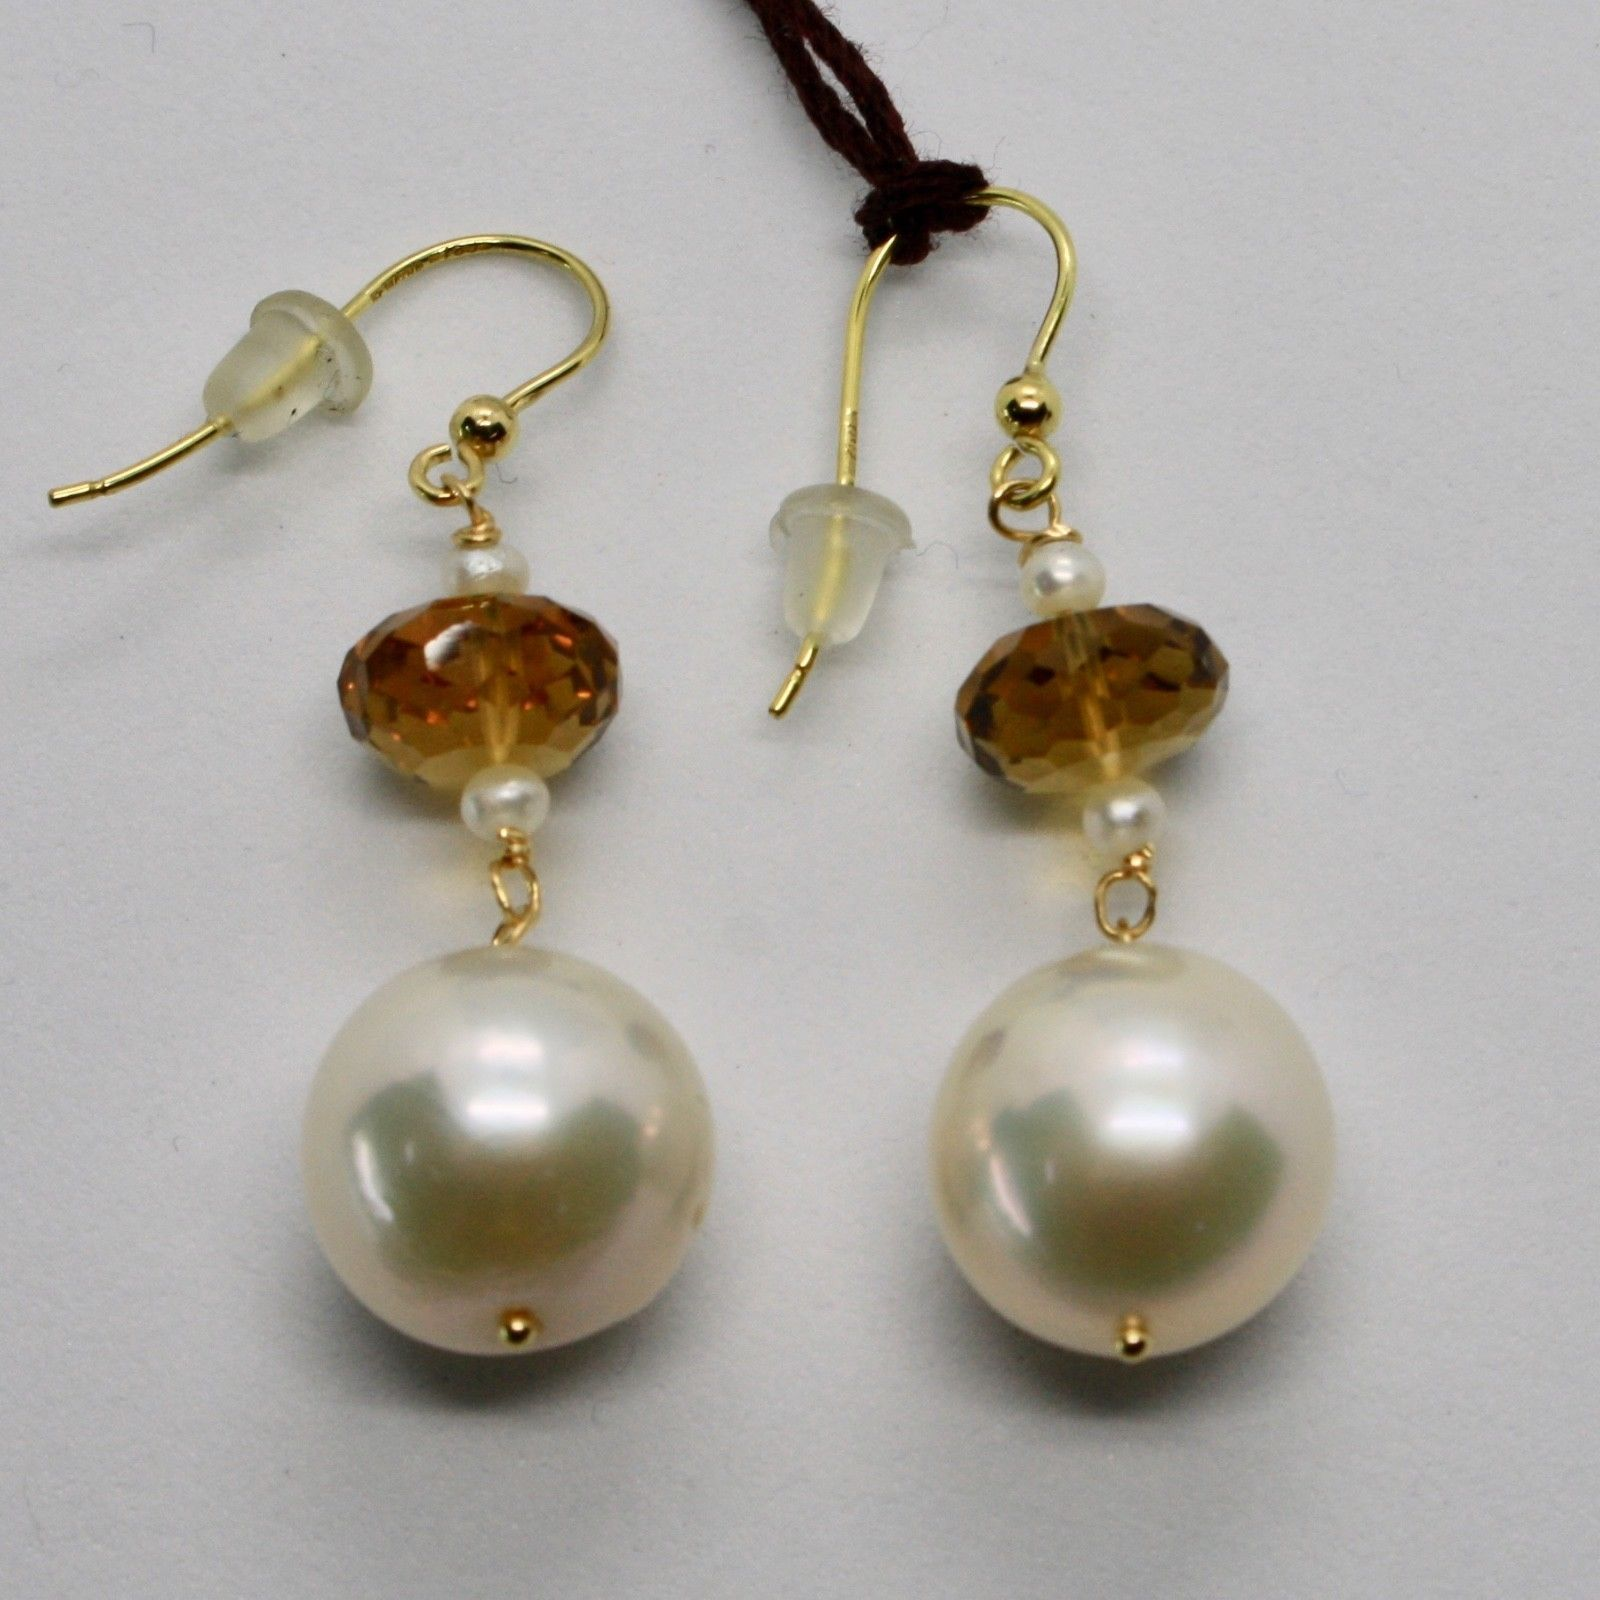 SOLID 18K YELLOW GOLD EARRINGS WITH WHITE PEARL AND BEER QUARTZ MADE IN ITALY